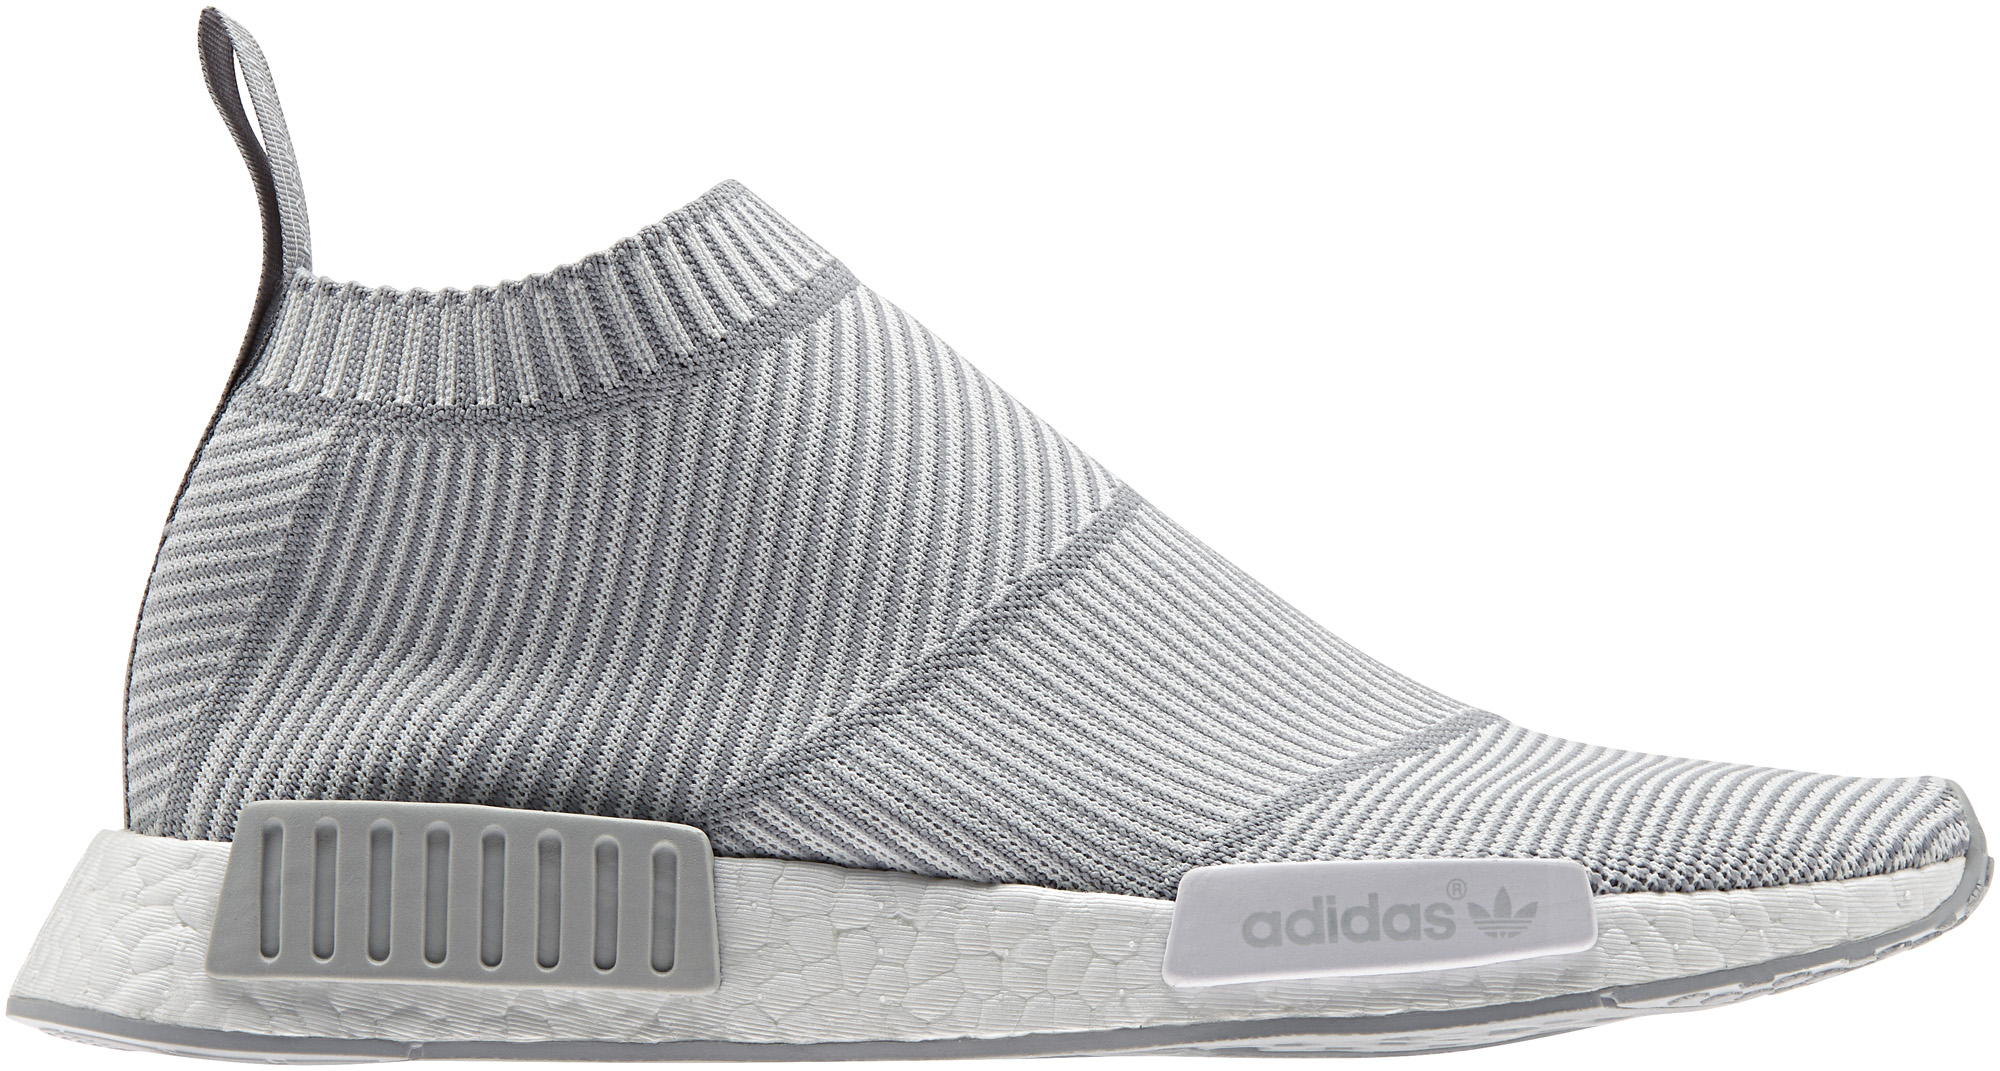 adidas Celebrate NMD Runaway Success With The Blackout/Whiteout Pack [Sneak] S32191 PRFTWLATER FI